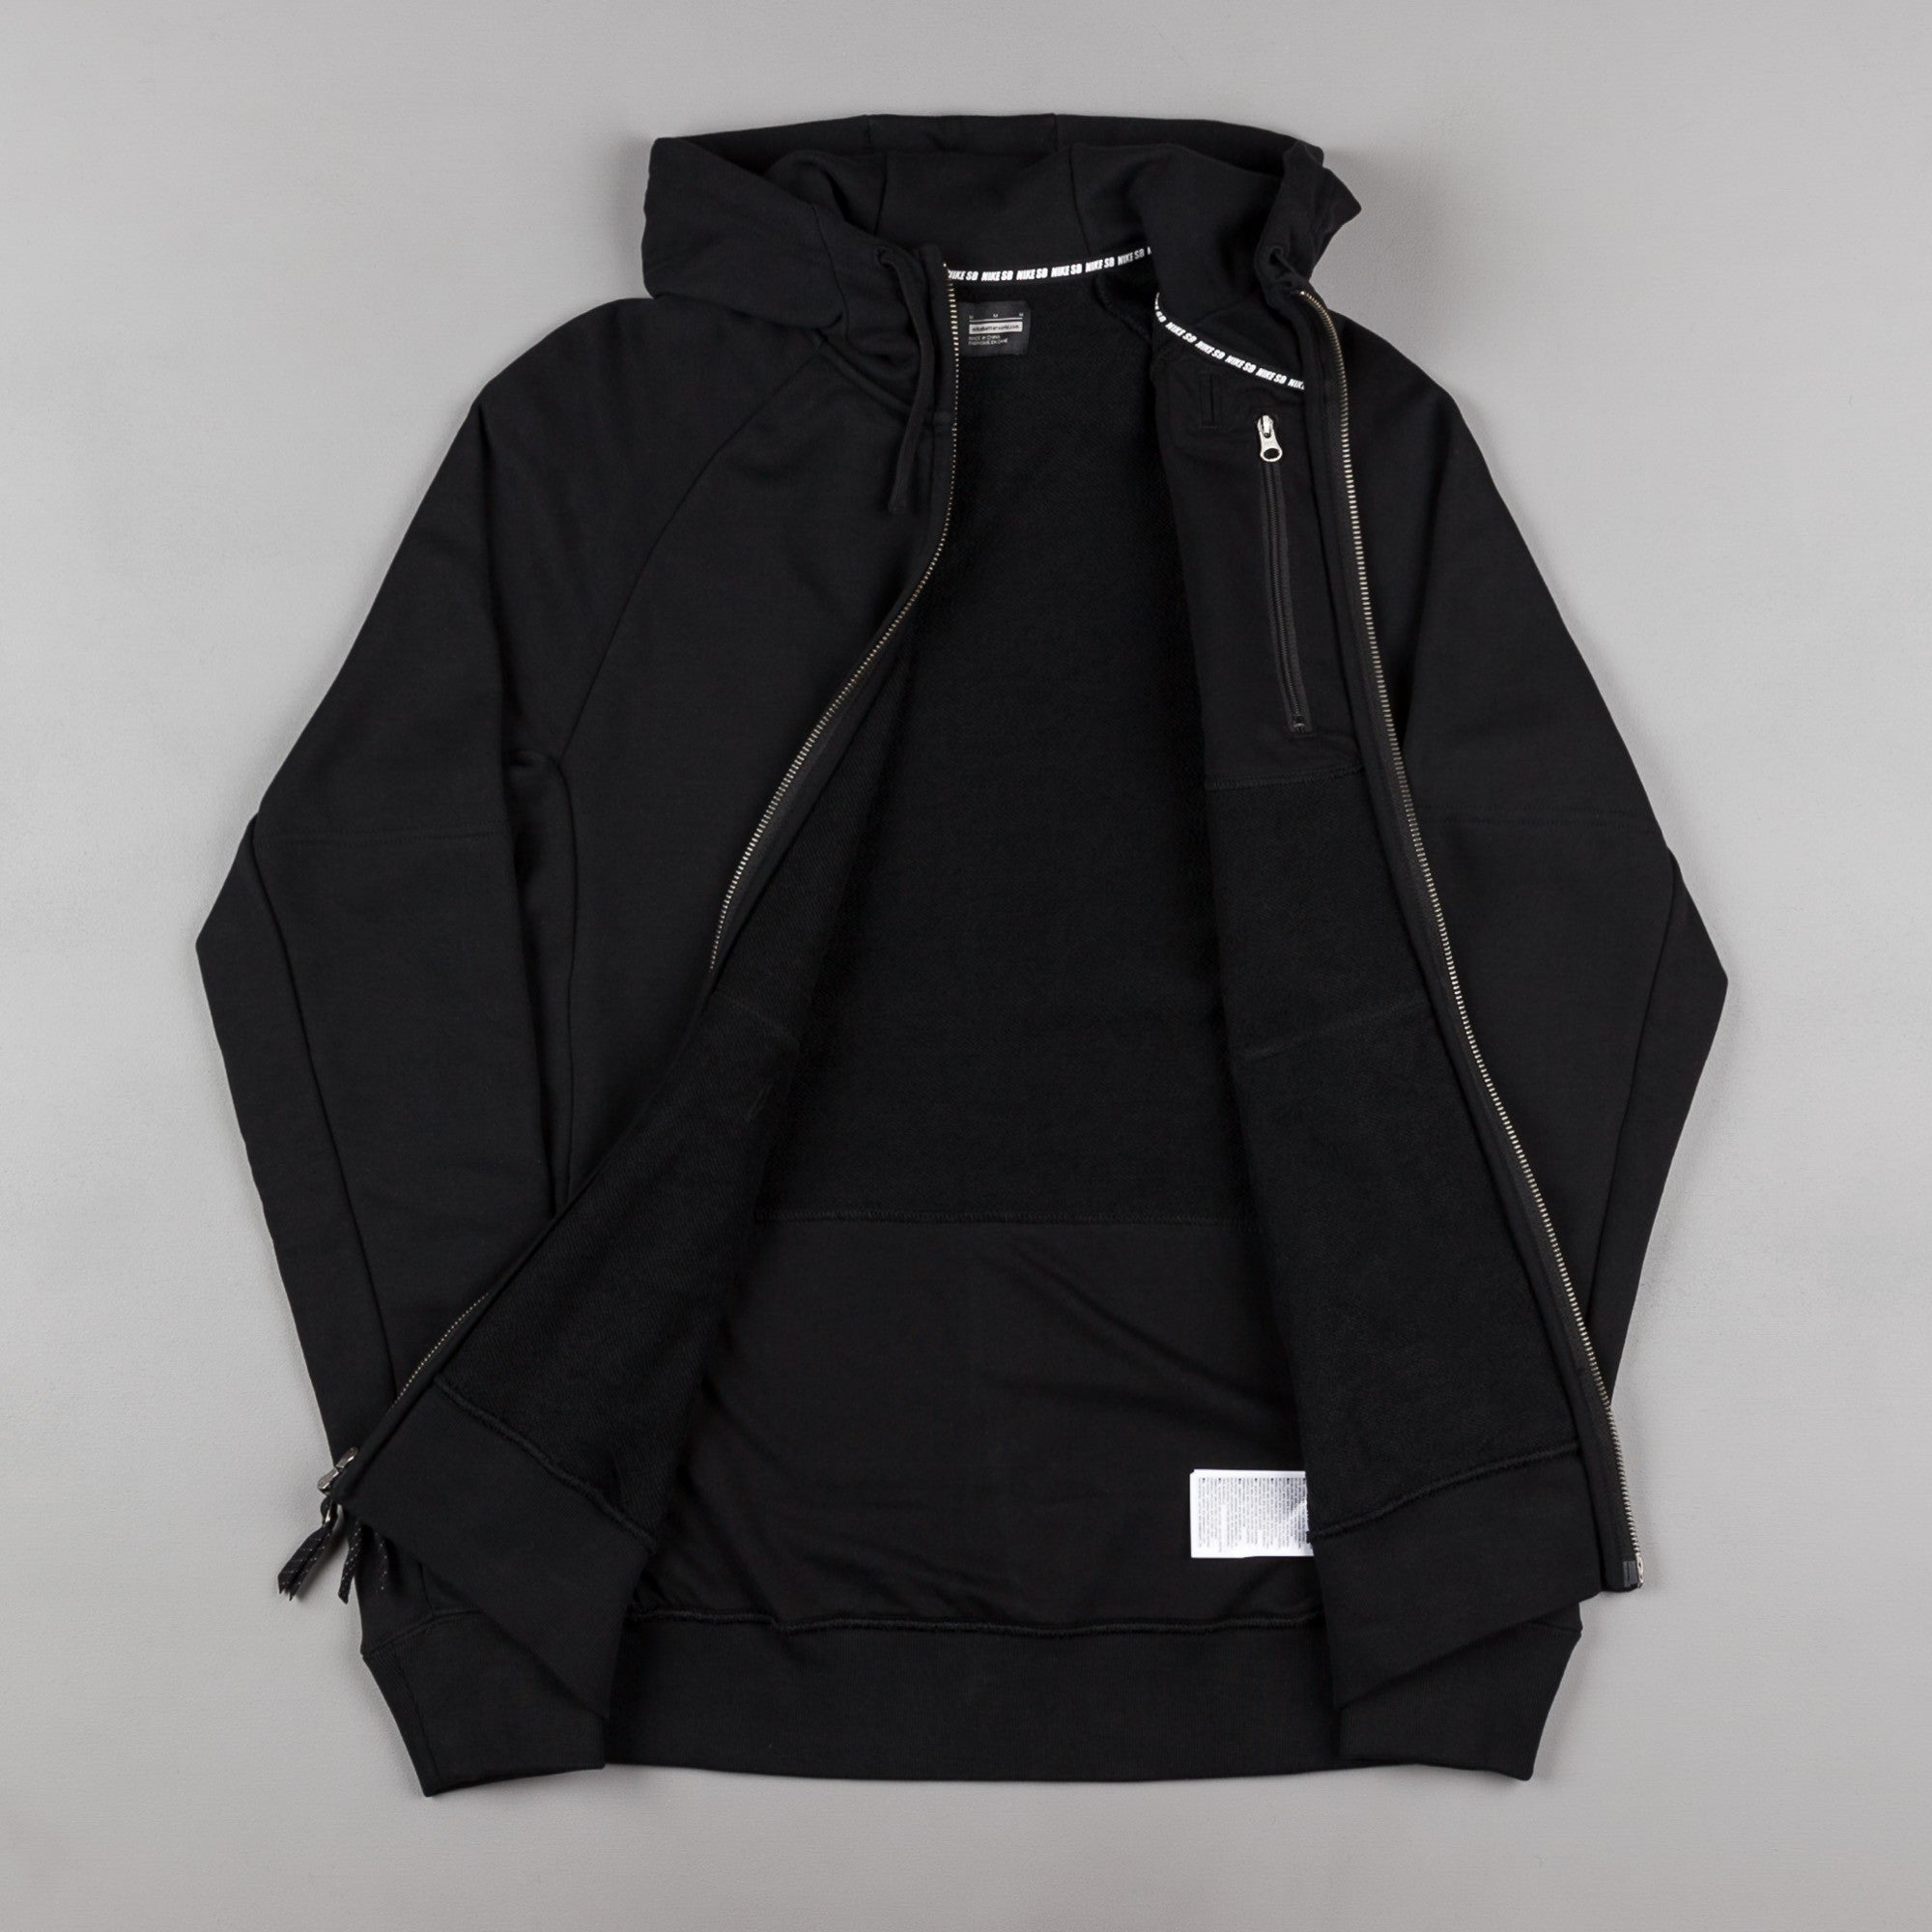 Nike SB Everett Hooded Sweatshirt - Black / White